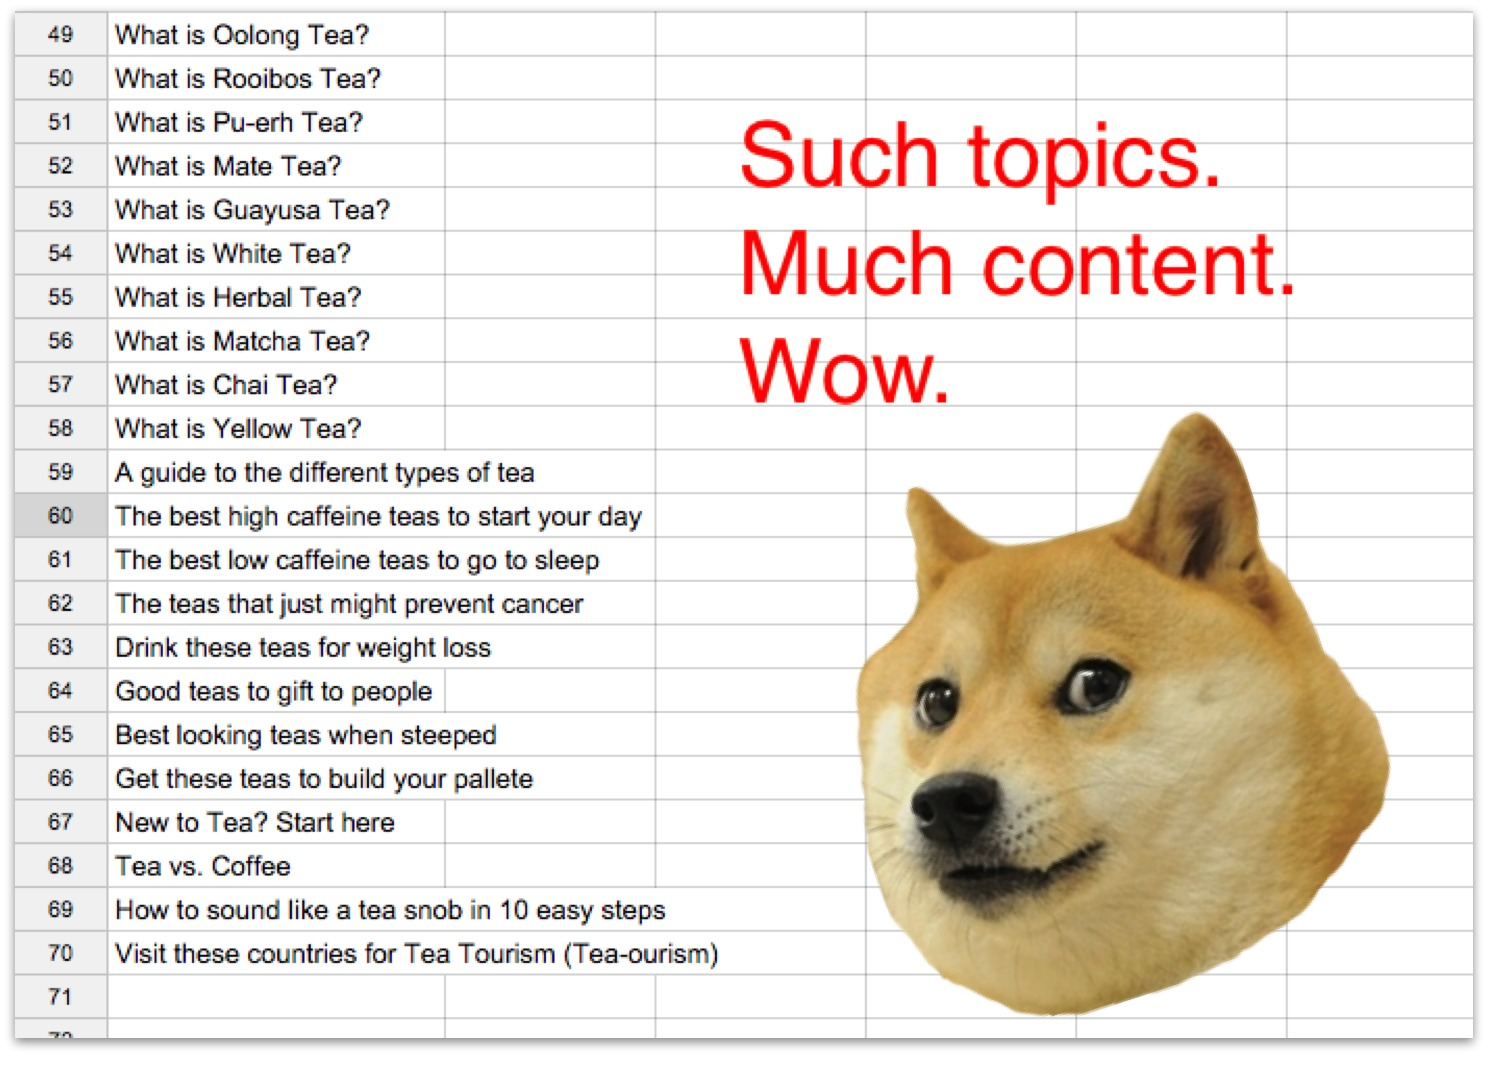 doge nat likes tea such topics much content